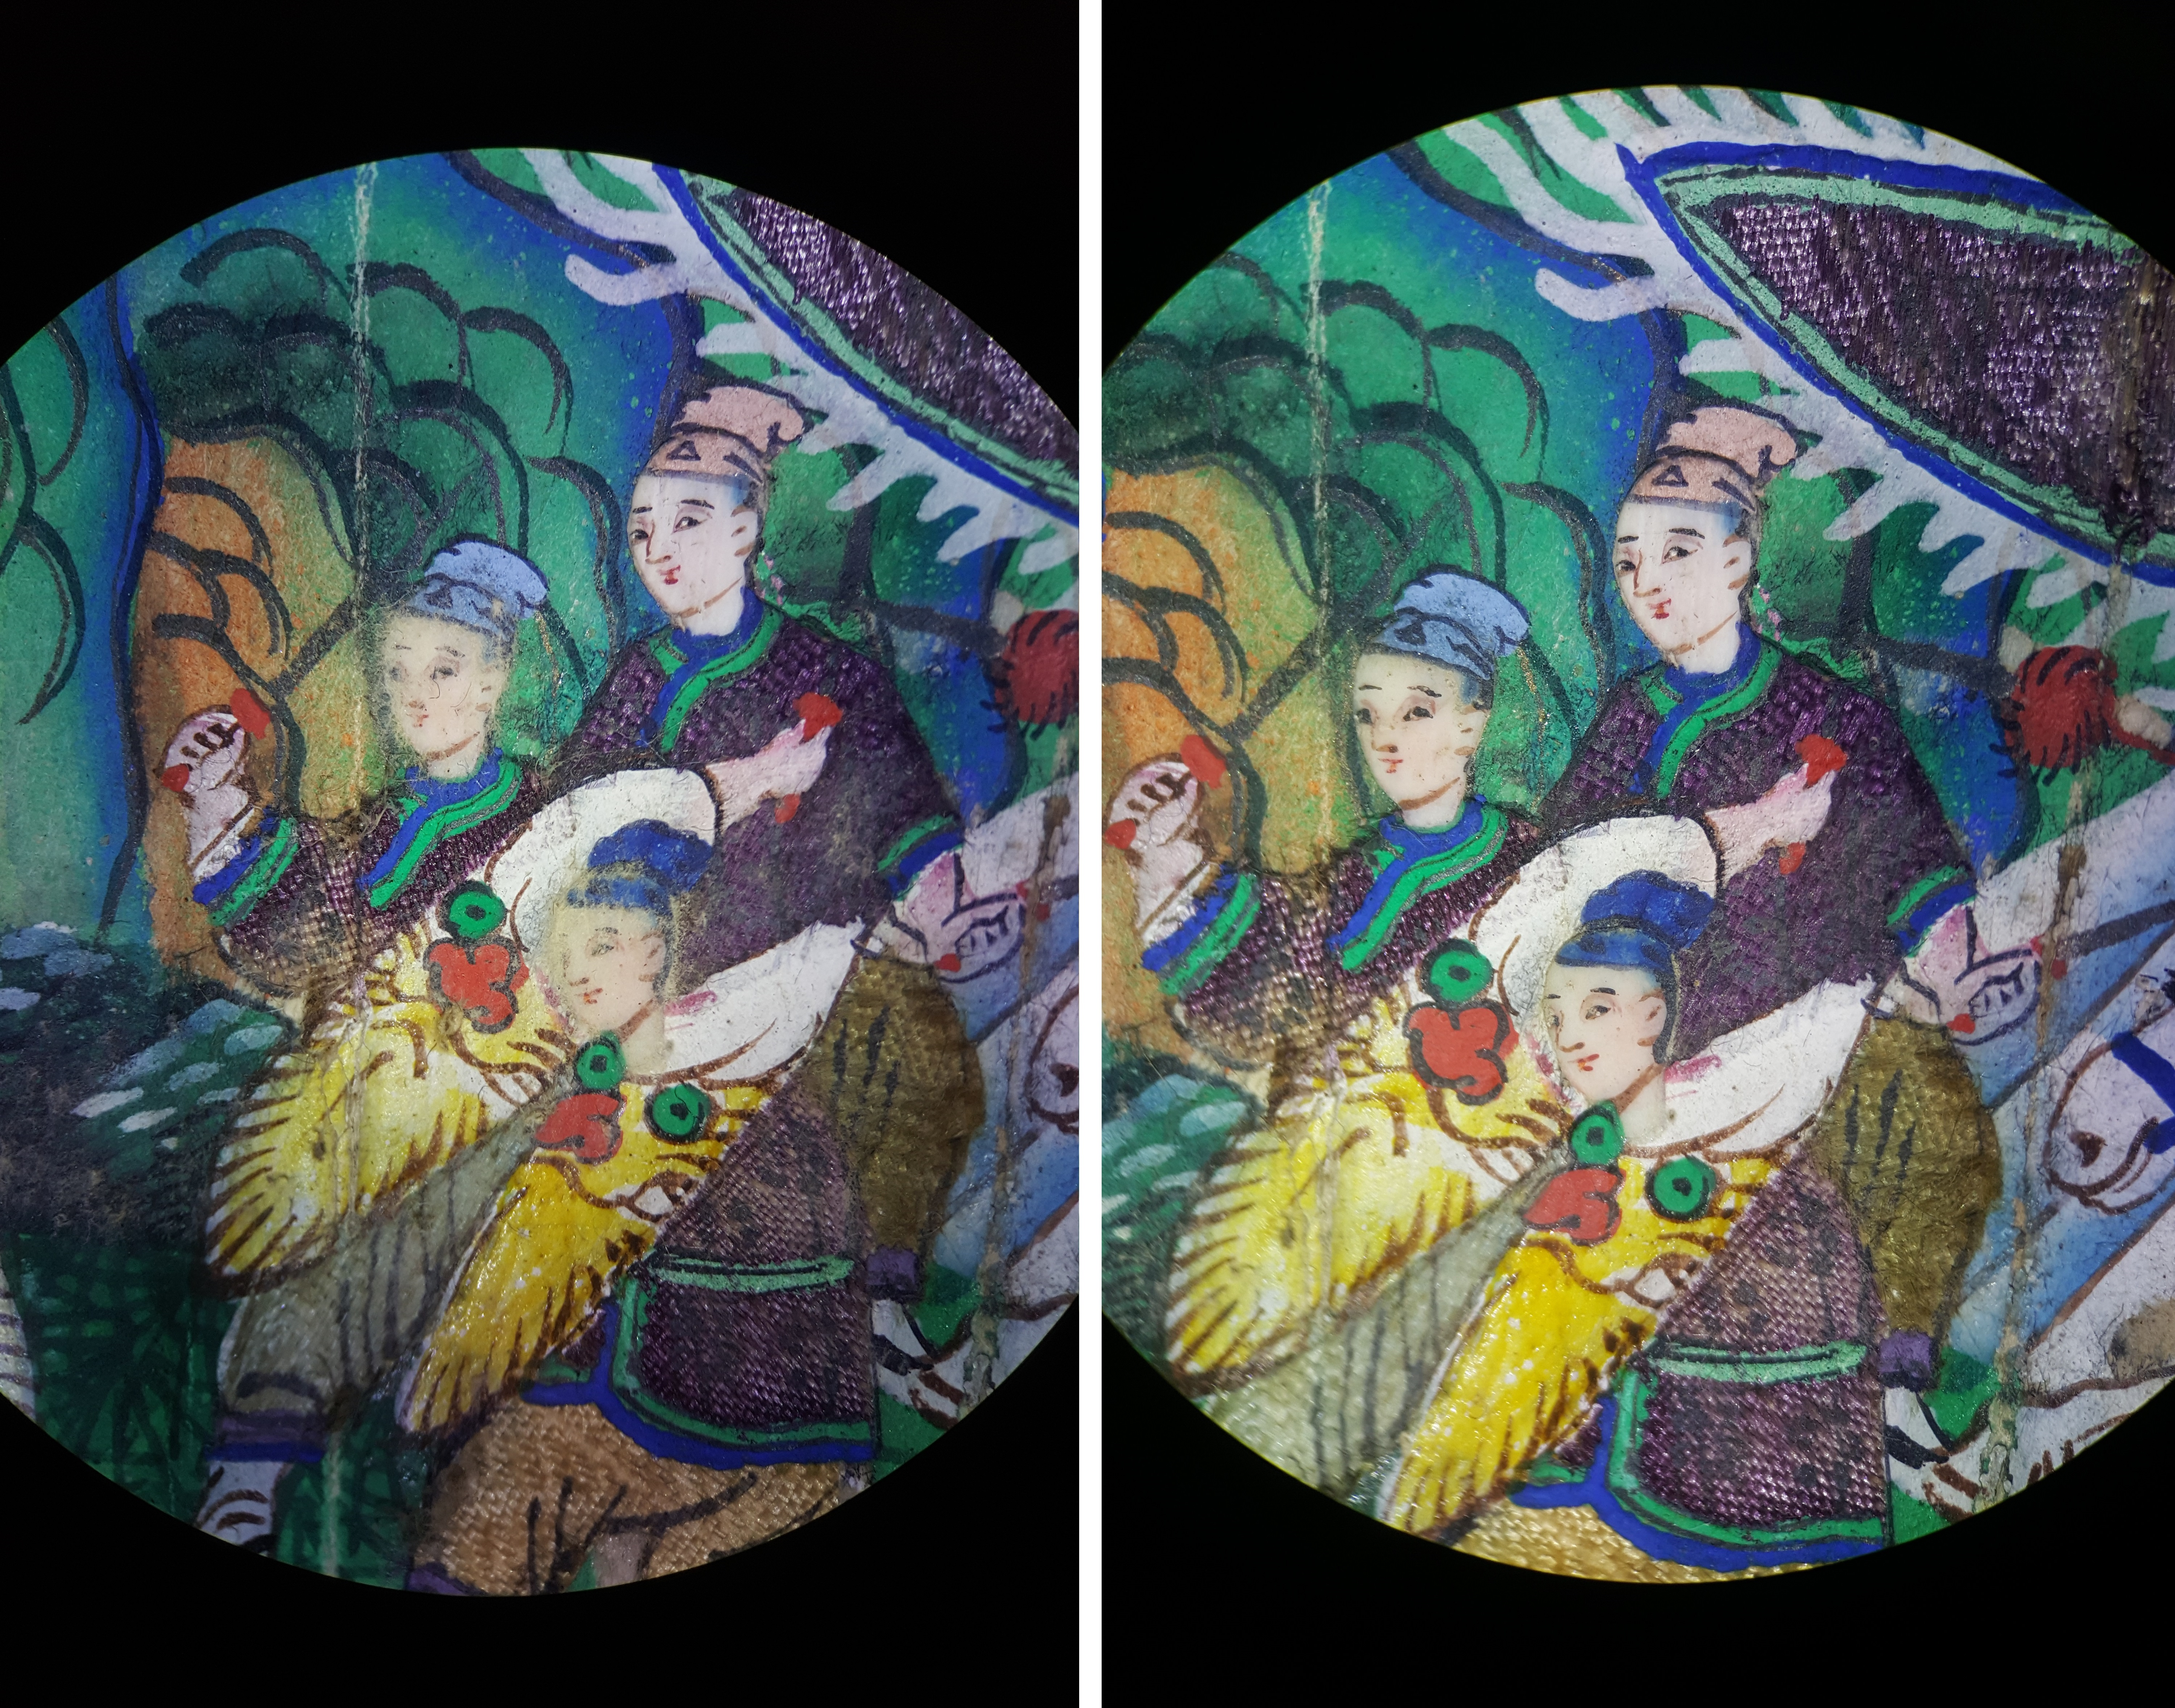 Two photos showing details of the same area of the fan where there are three figures in purple robes on a busy background. In the left image, there is dust and debris on the surface, particularly obscuring the faces of the figures. On the right, this has been cleaned off the surface.